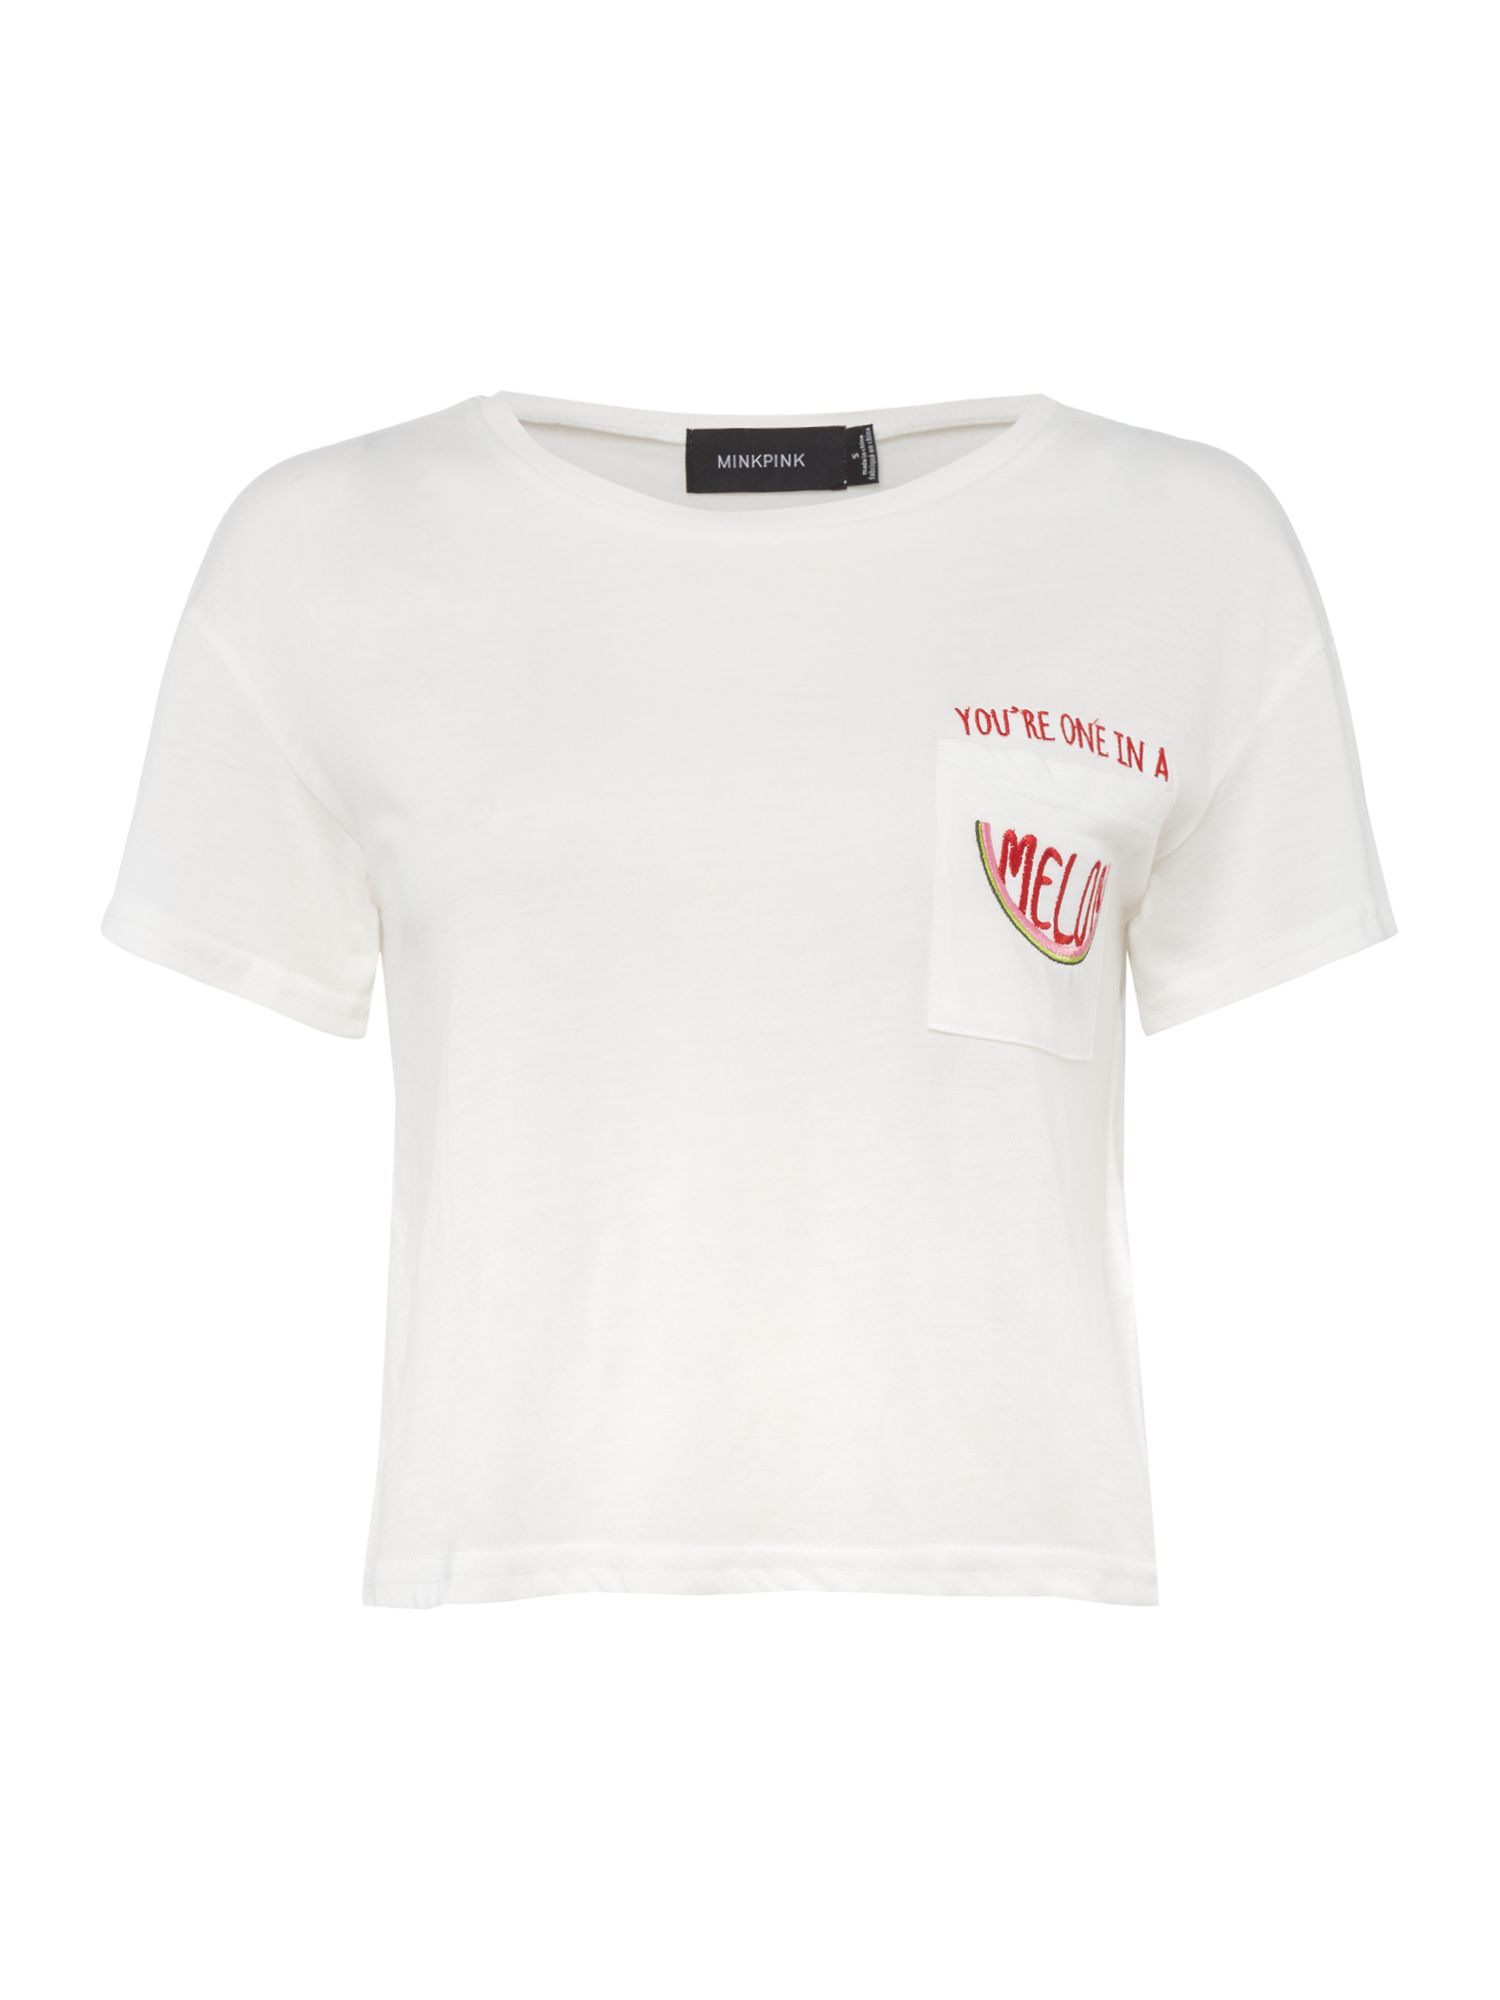 Mink Pink Crop top jersey tee, White